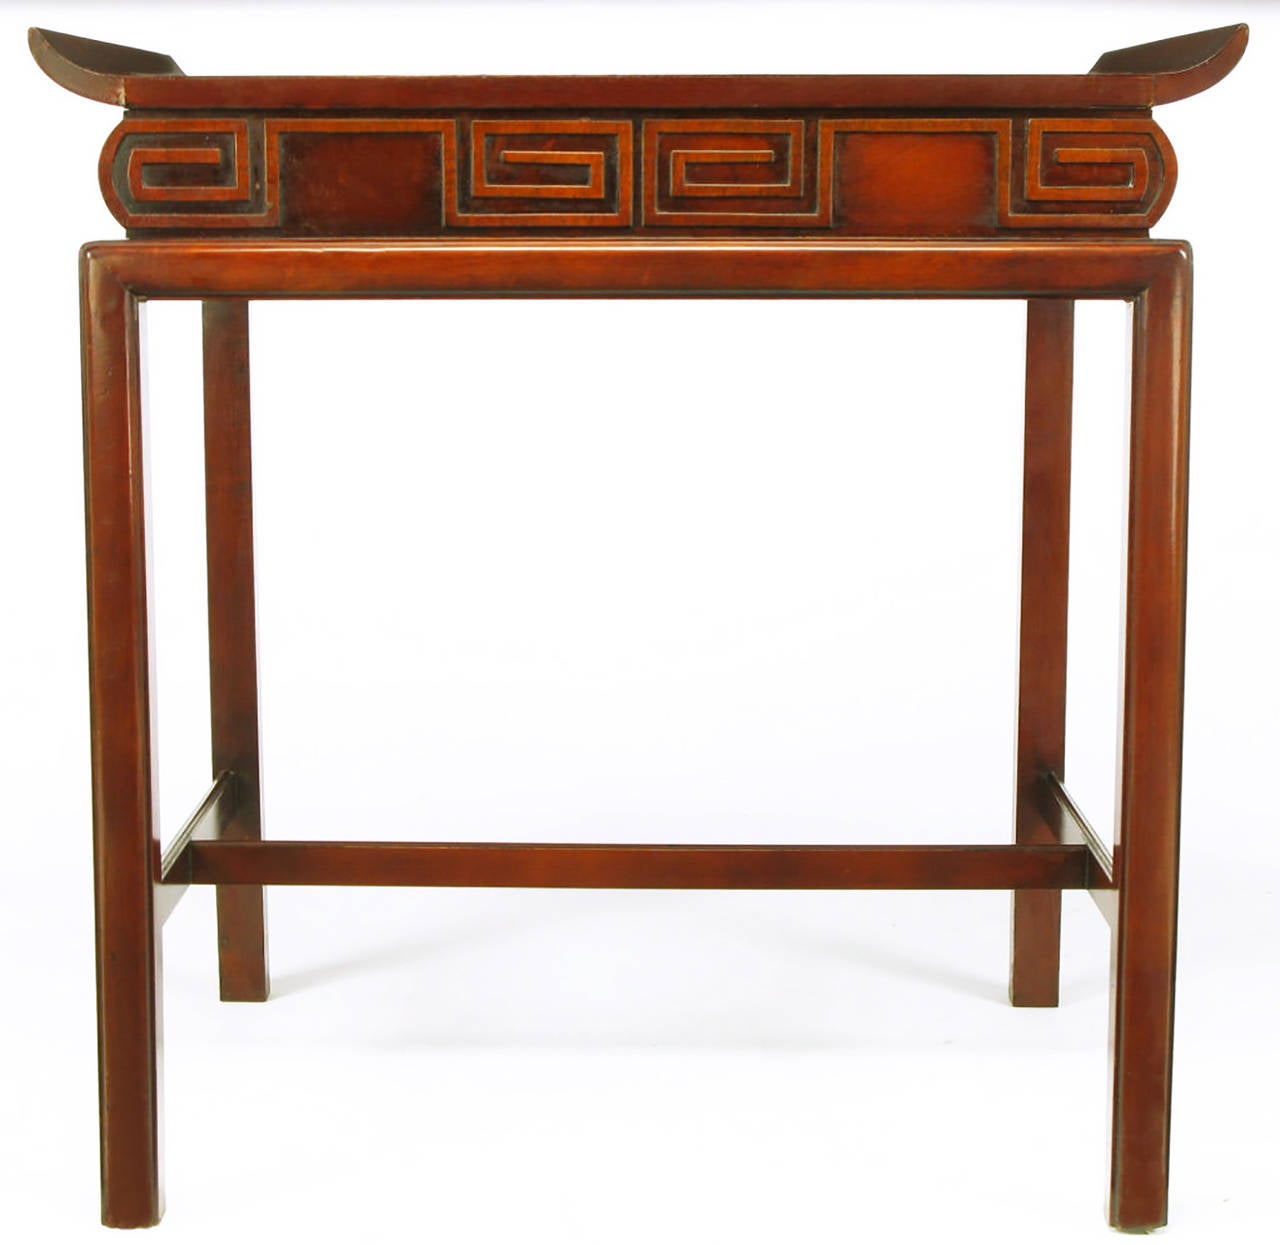 Pair of Curved Mahogany and Leather Top End Tables with Greek Key Reliefs 4